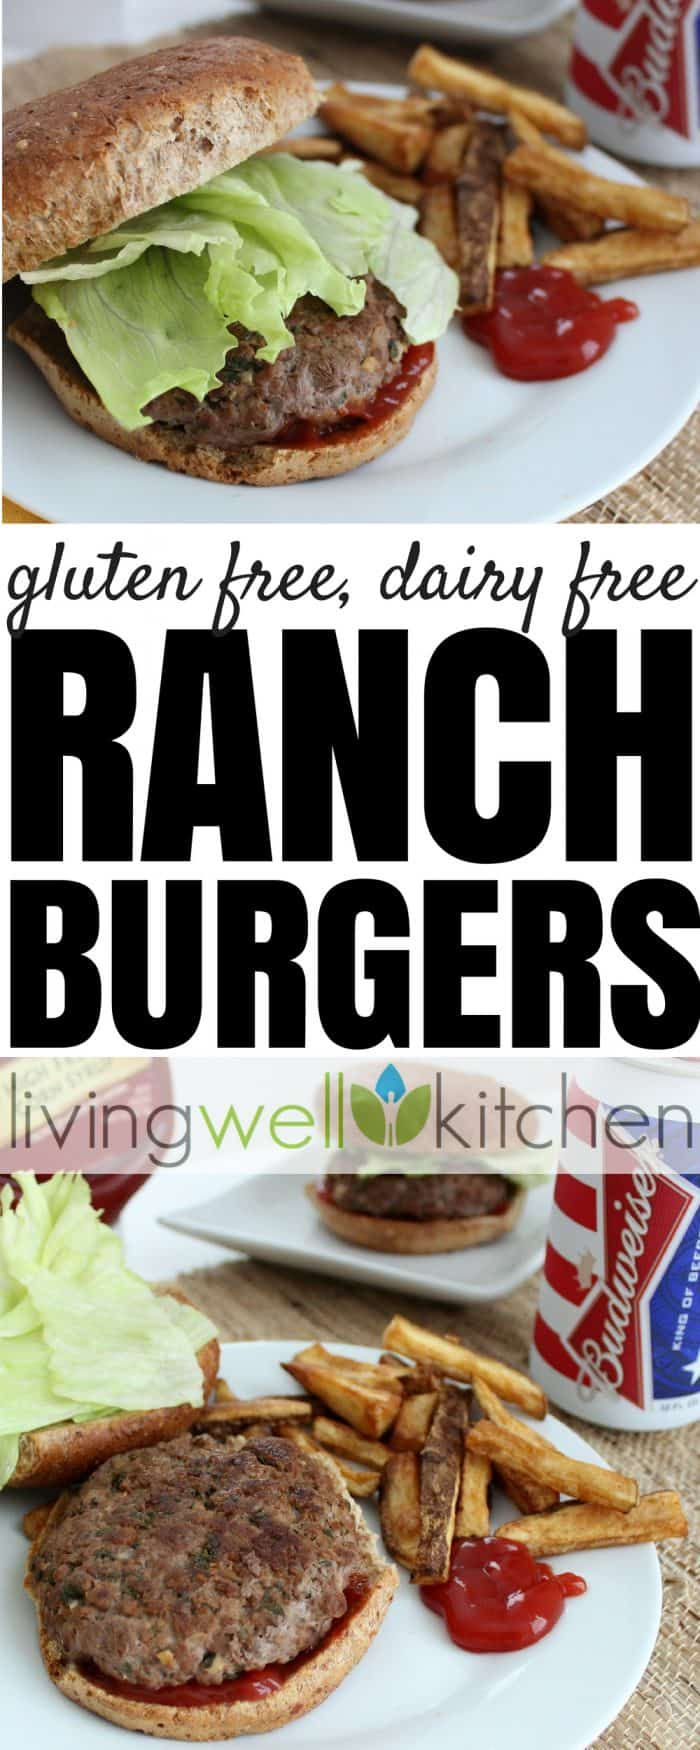 ranch burgers photo collage